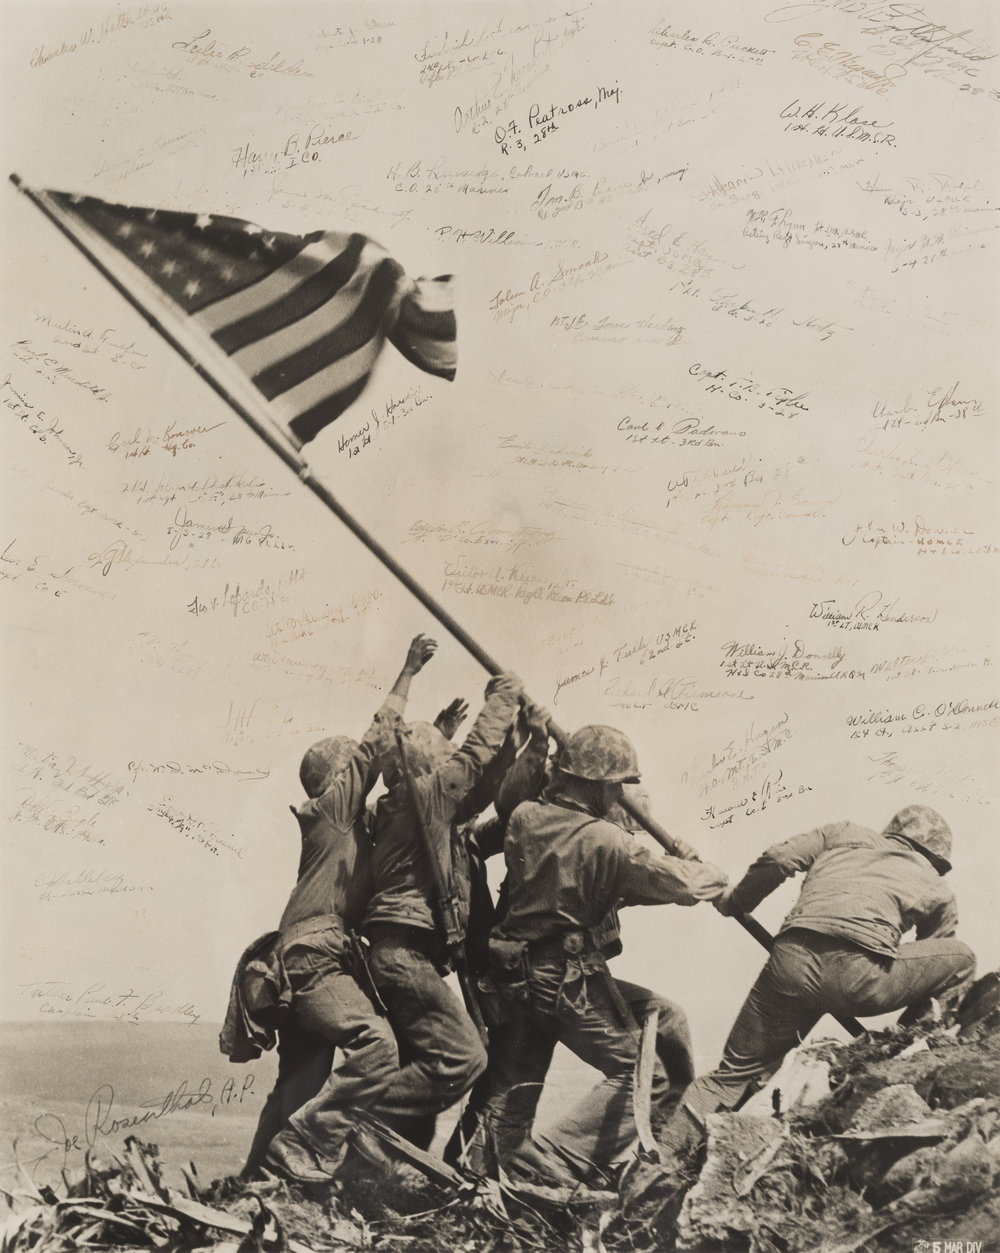 Battle of Iwo Jima, March 2, 1945 (w/surviving participants signatures)